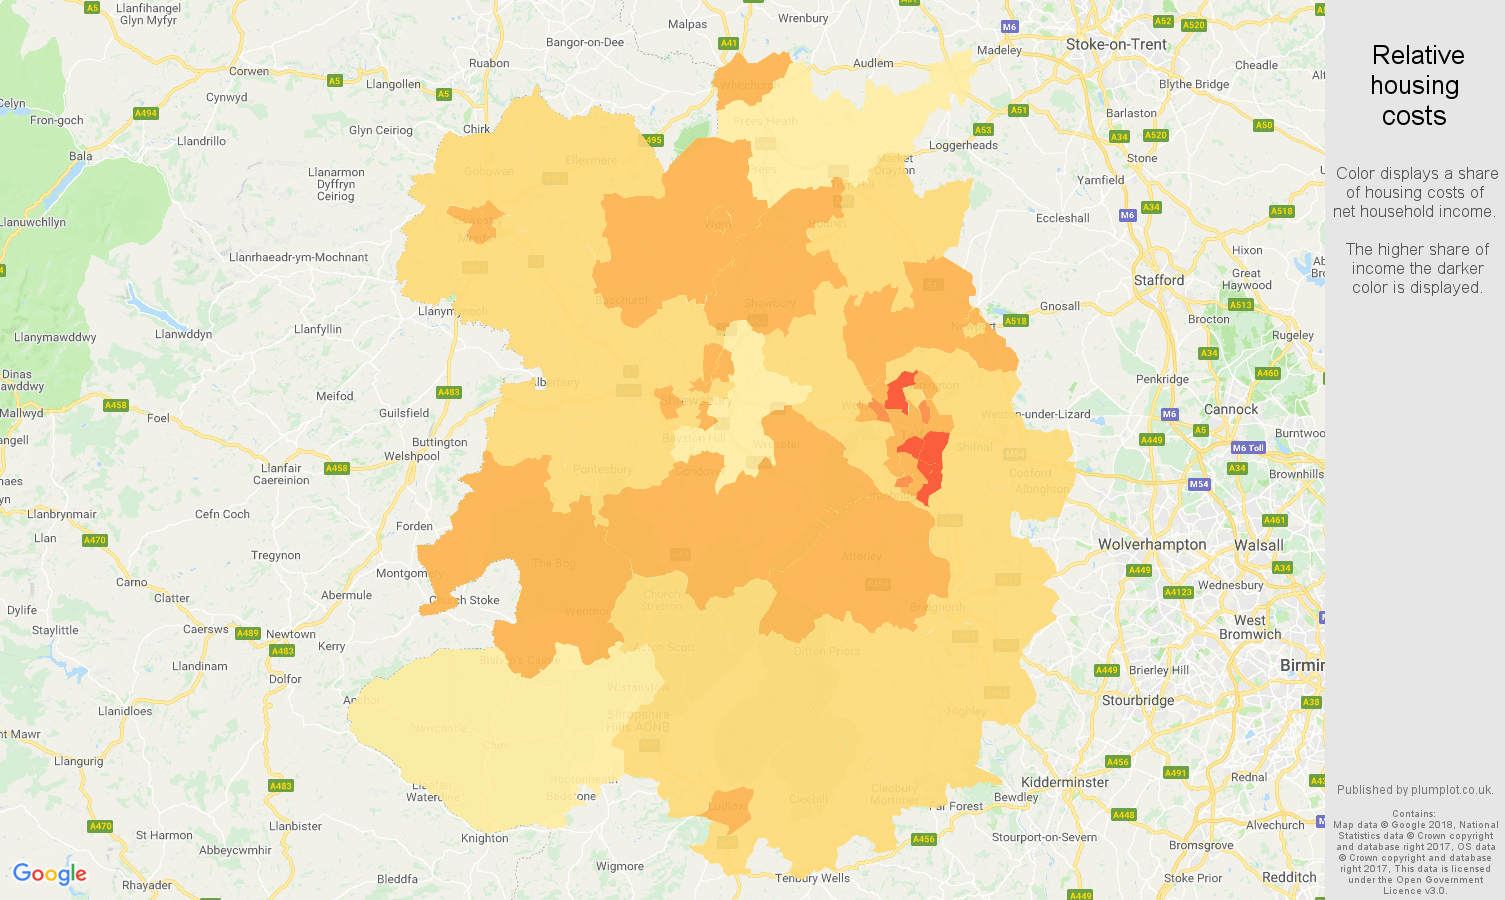 Shropshire relative housing costs map